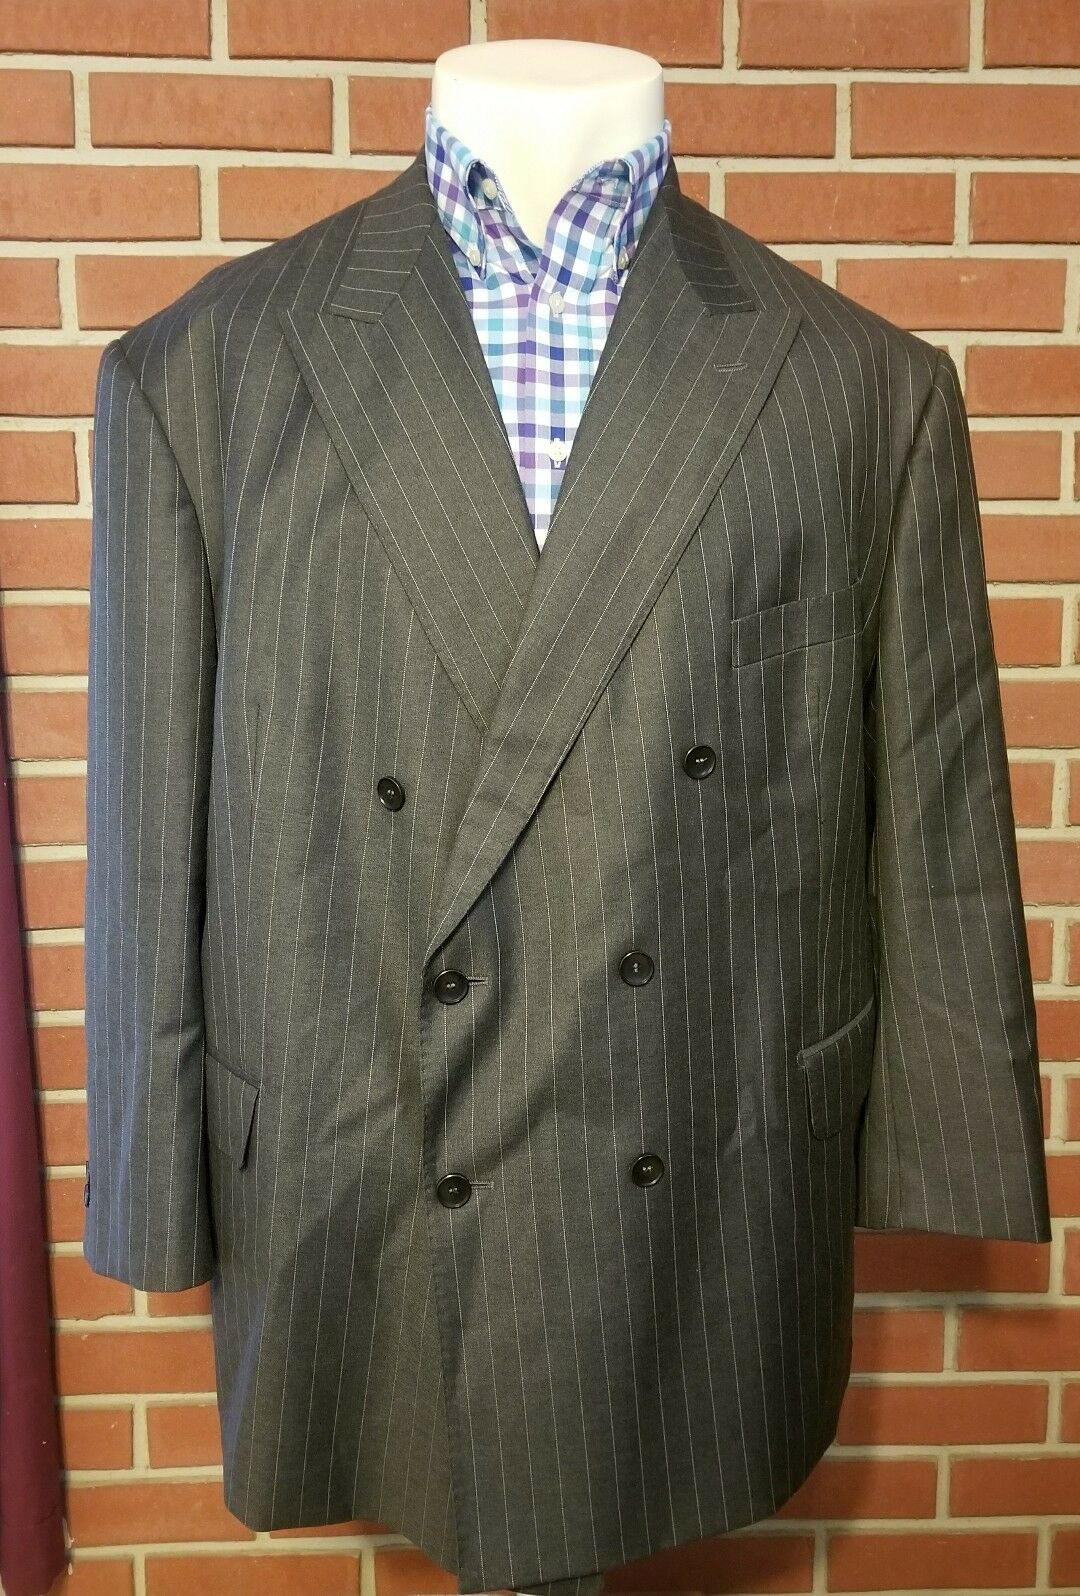 Ing. Lgold Piana Double Breasted Pinstripe Mens Blazer Four Seasons 130s Wool 56R